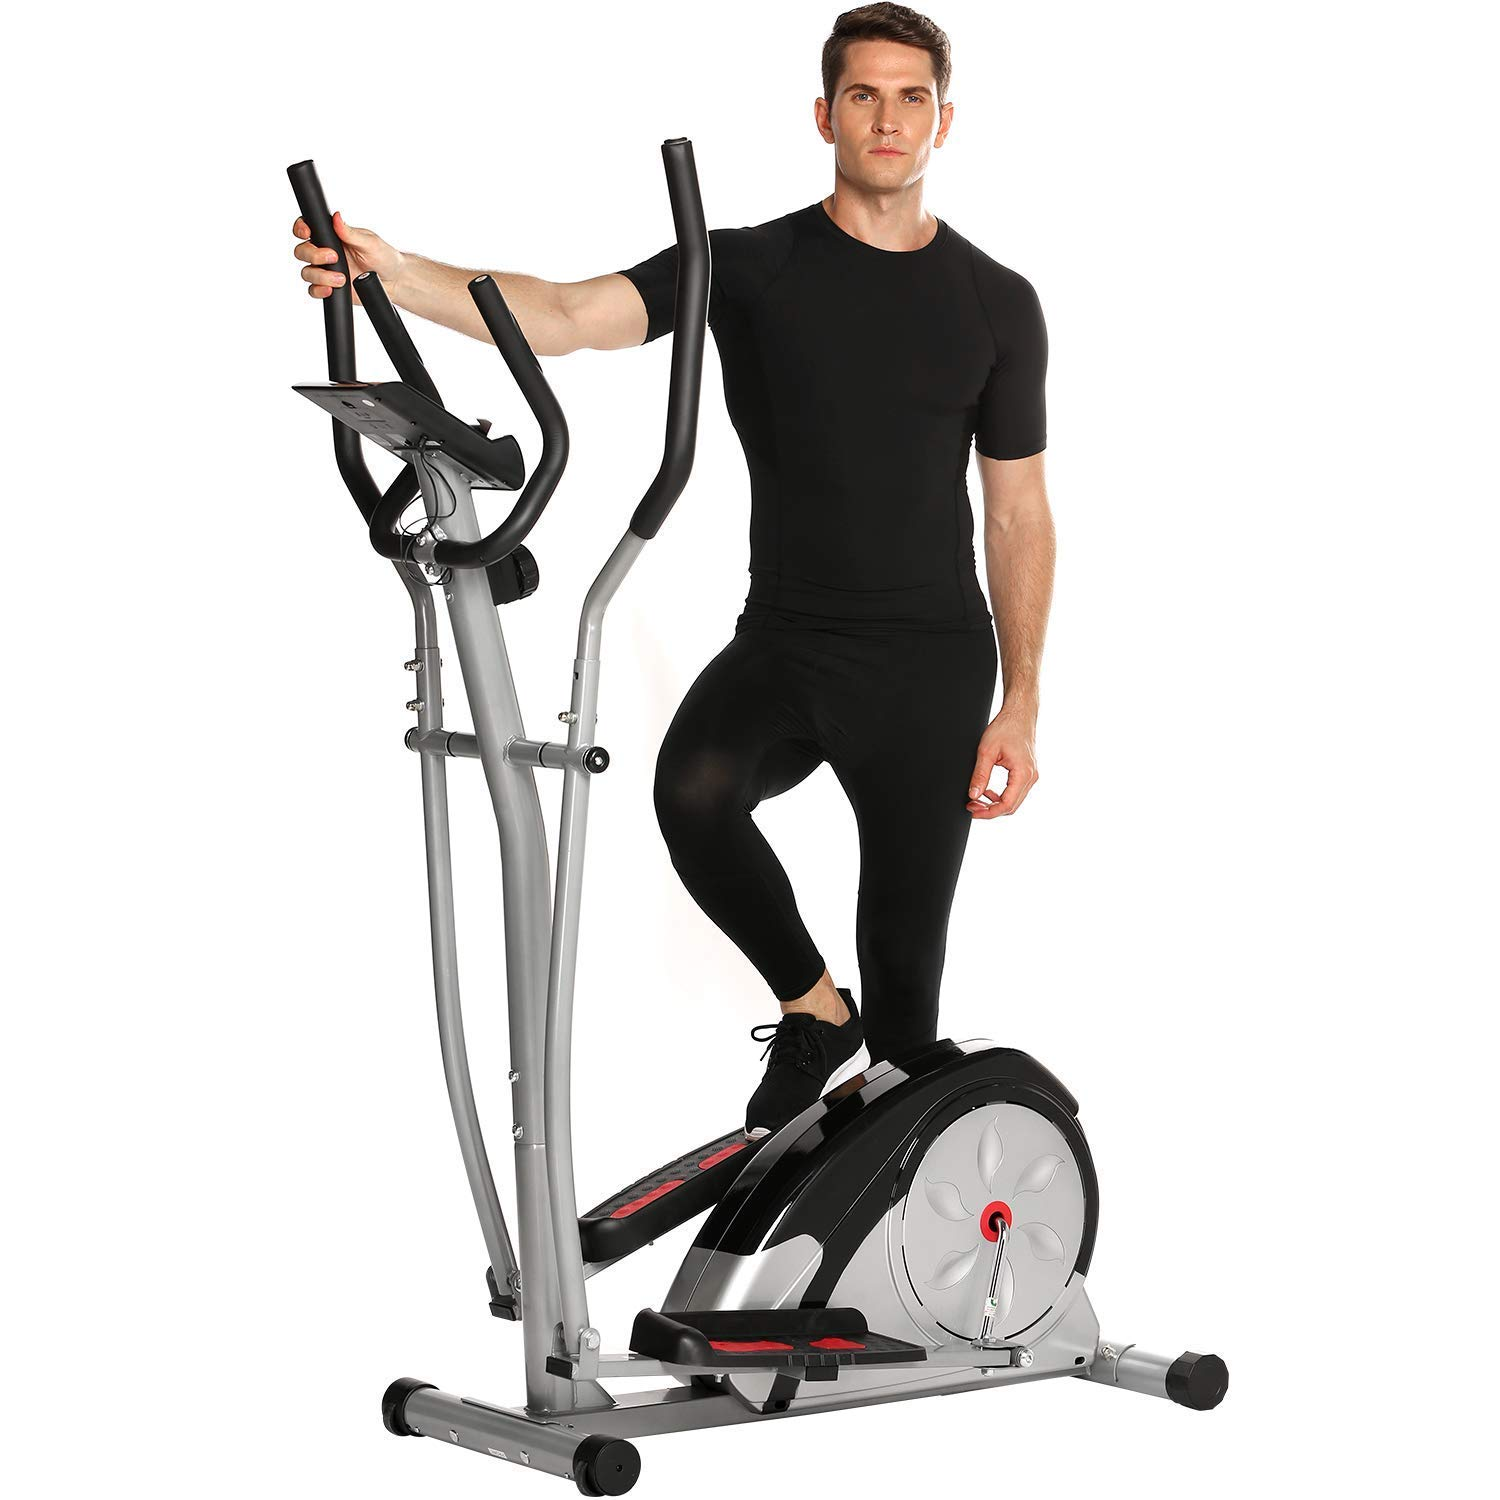 Aceshin Elliptical Machine Trainer Compact Life Fitness Exercise Equipment for Home Workout Offic Gym (Gray2) by Aceshin (Image #2)